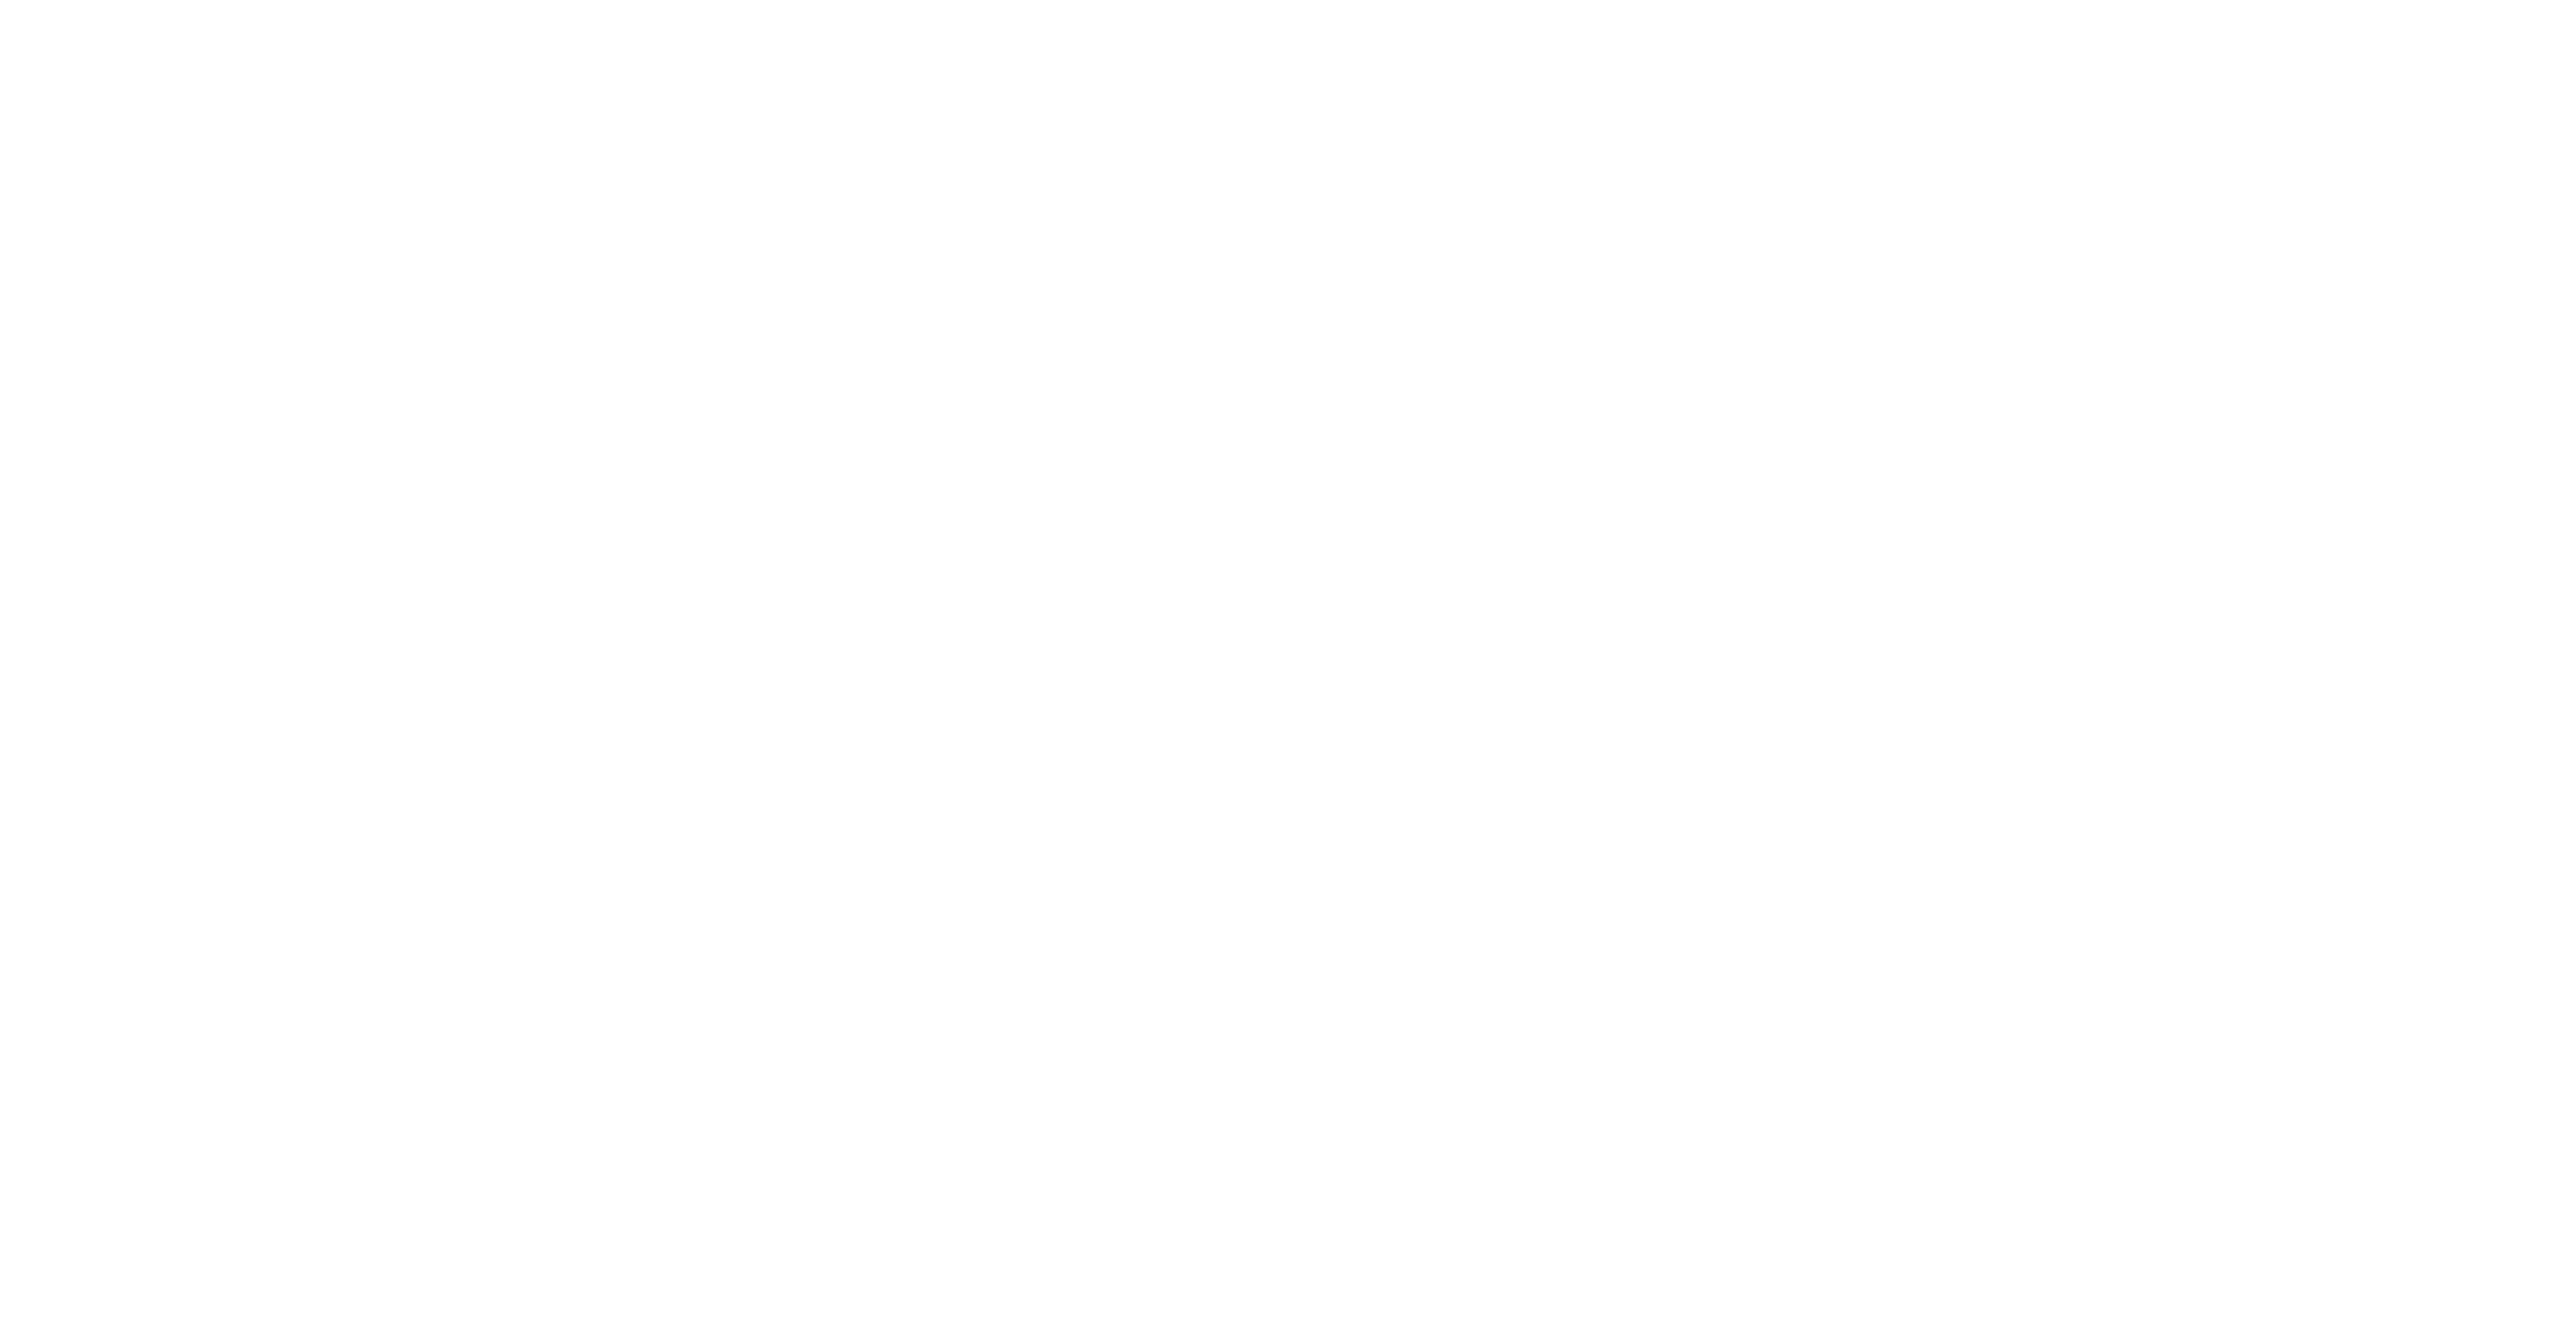 GotMountains